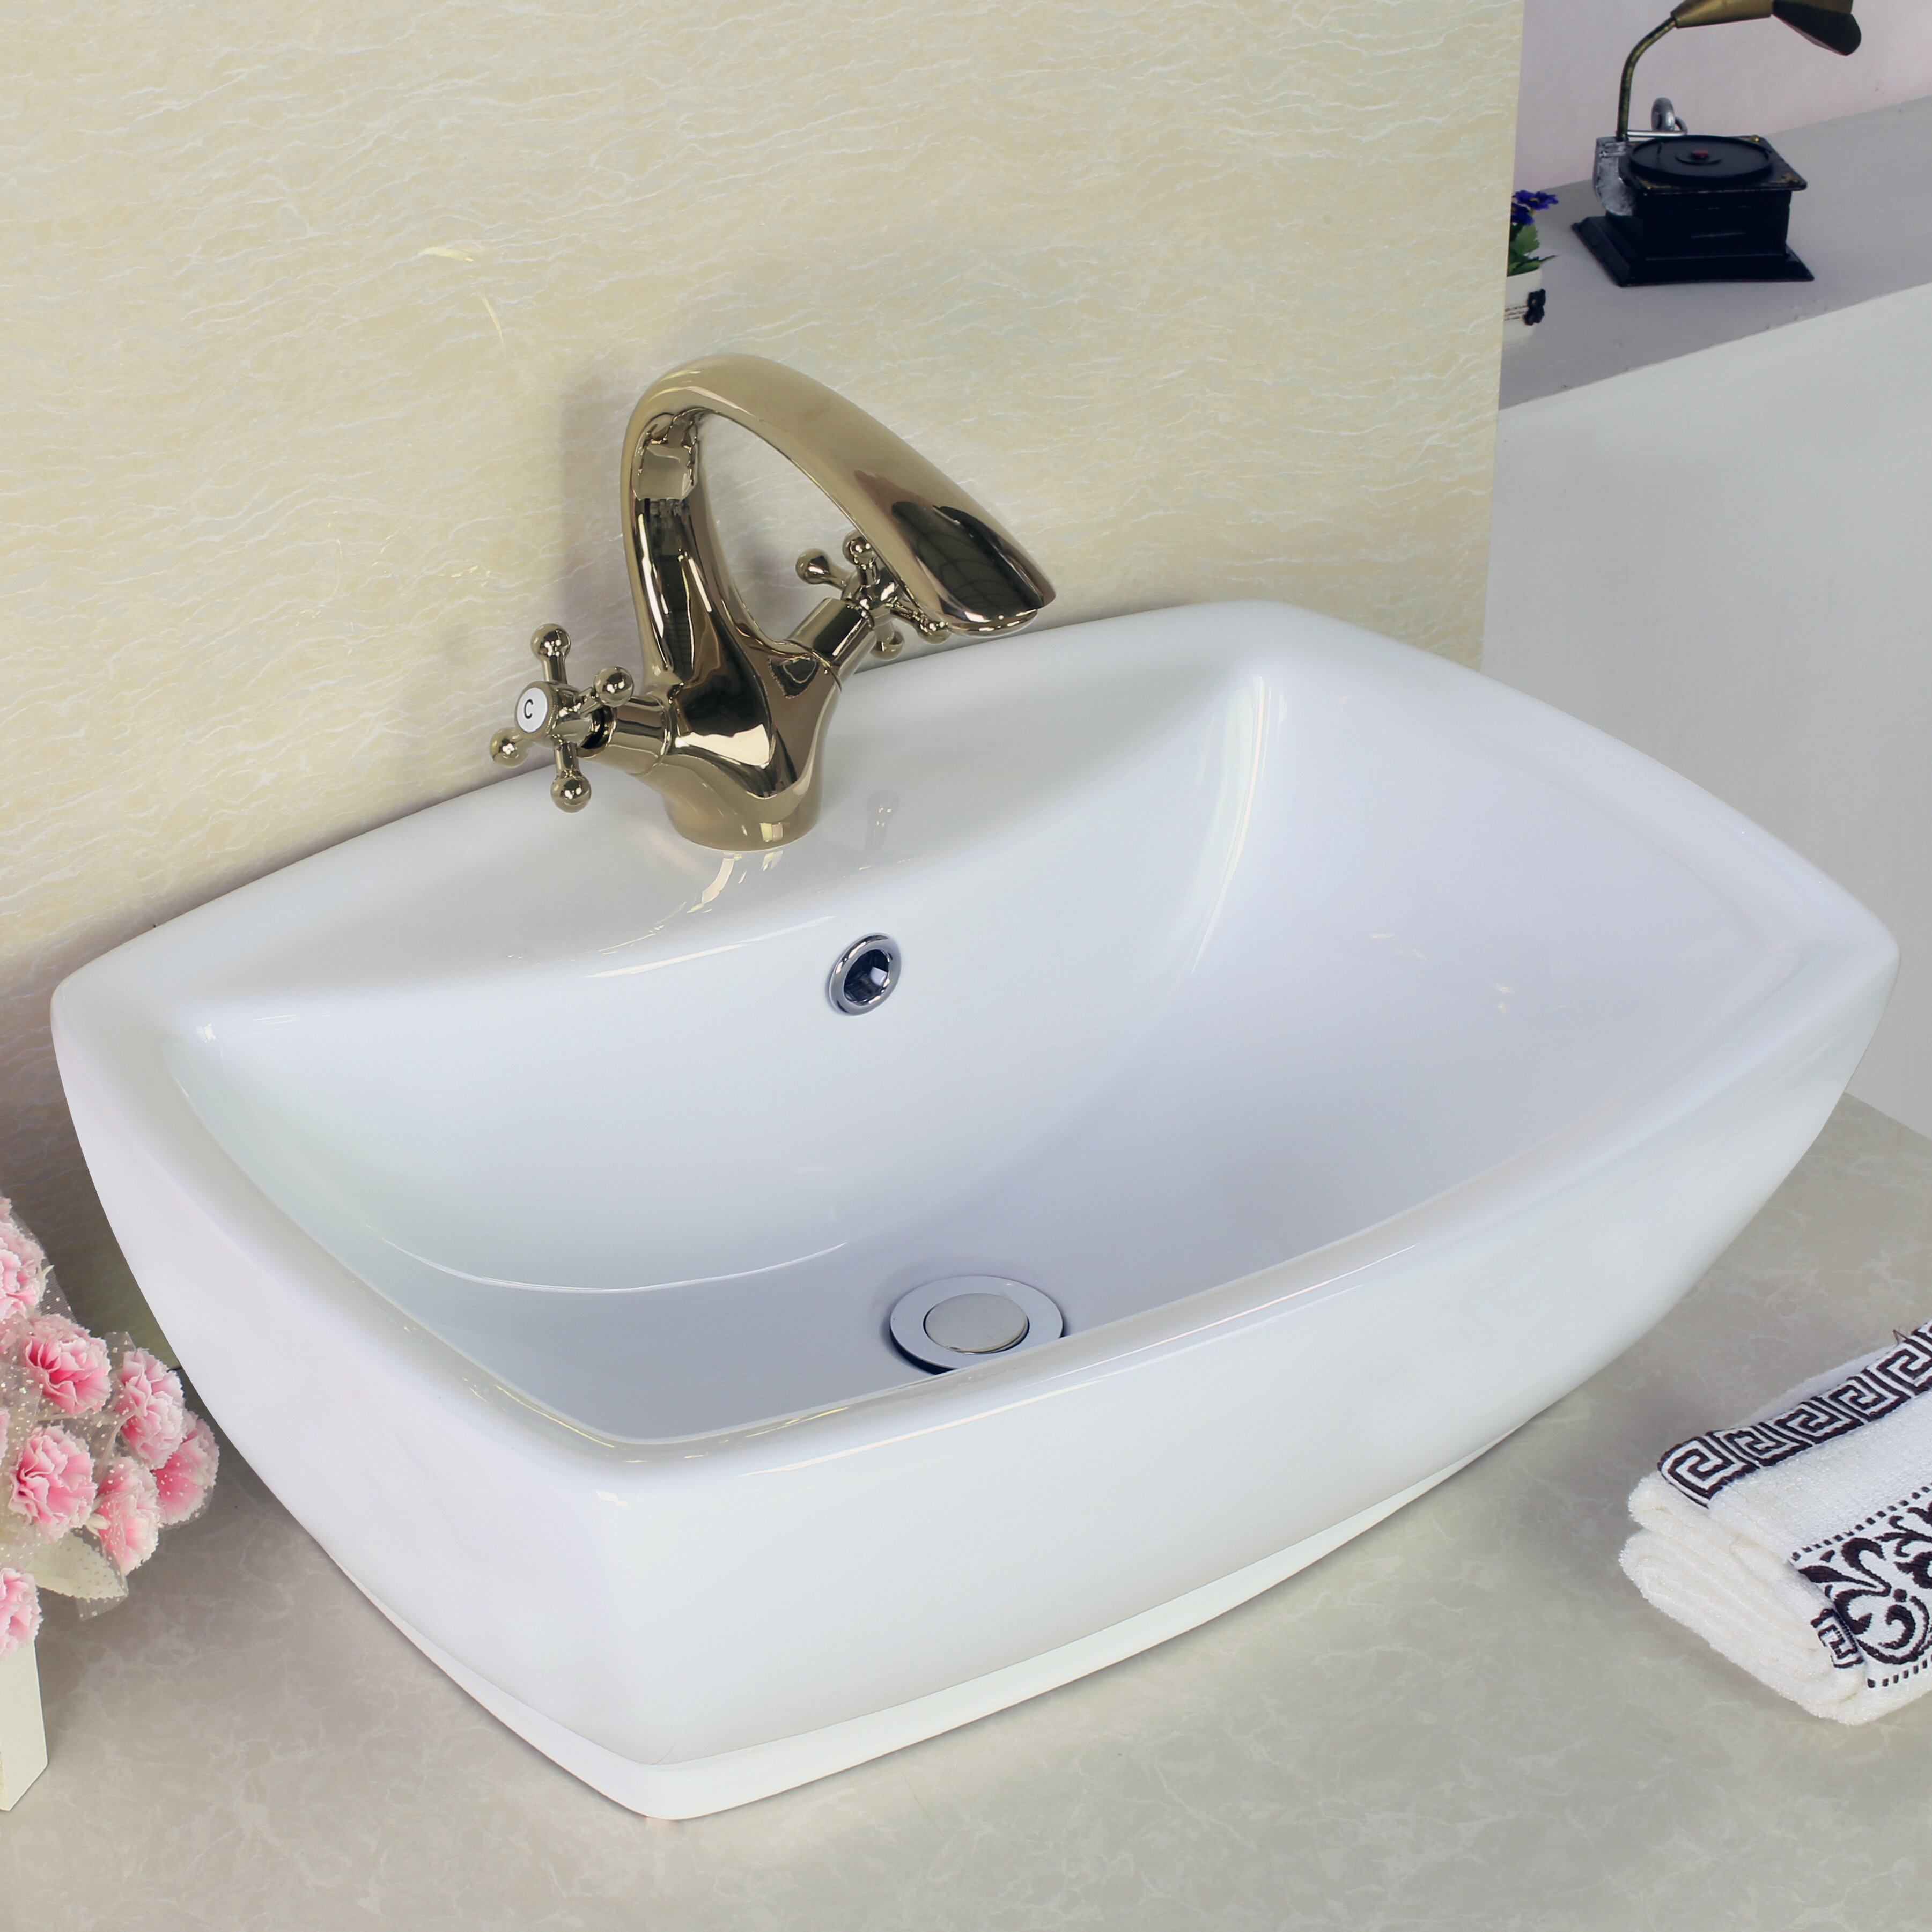 Rectangular Vessel Sink With Overflow : ... Imaginations Above Counter Rectangle Vessel Sink with Overflow